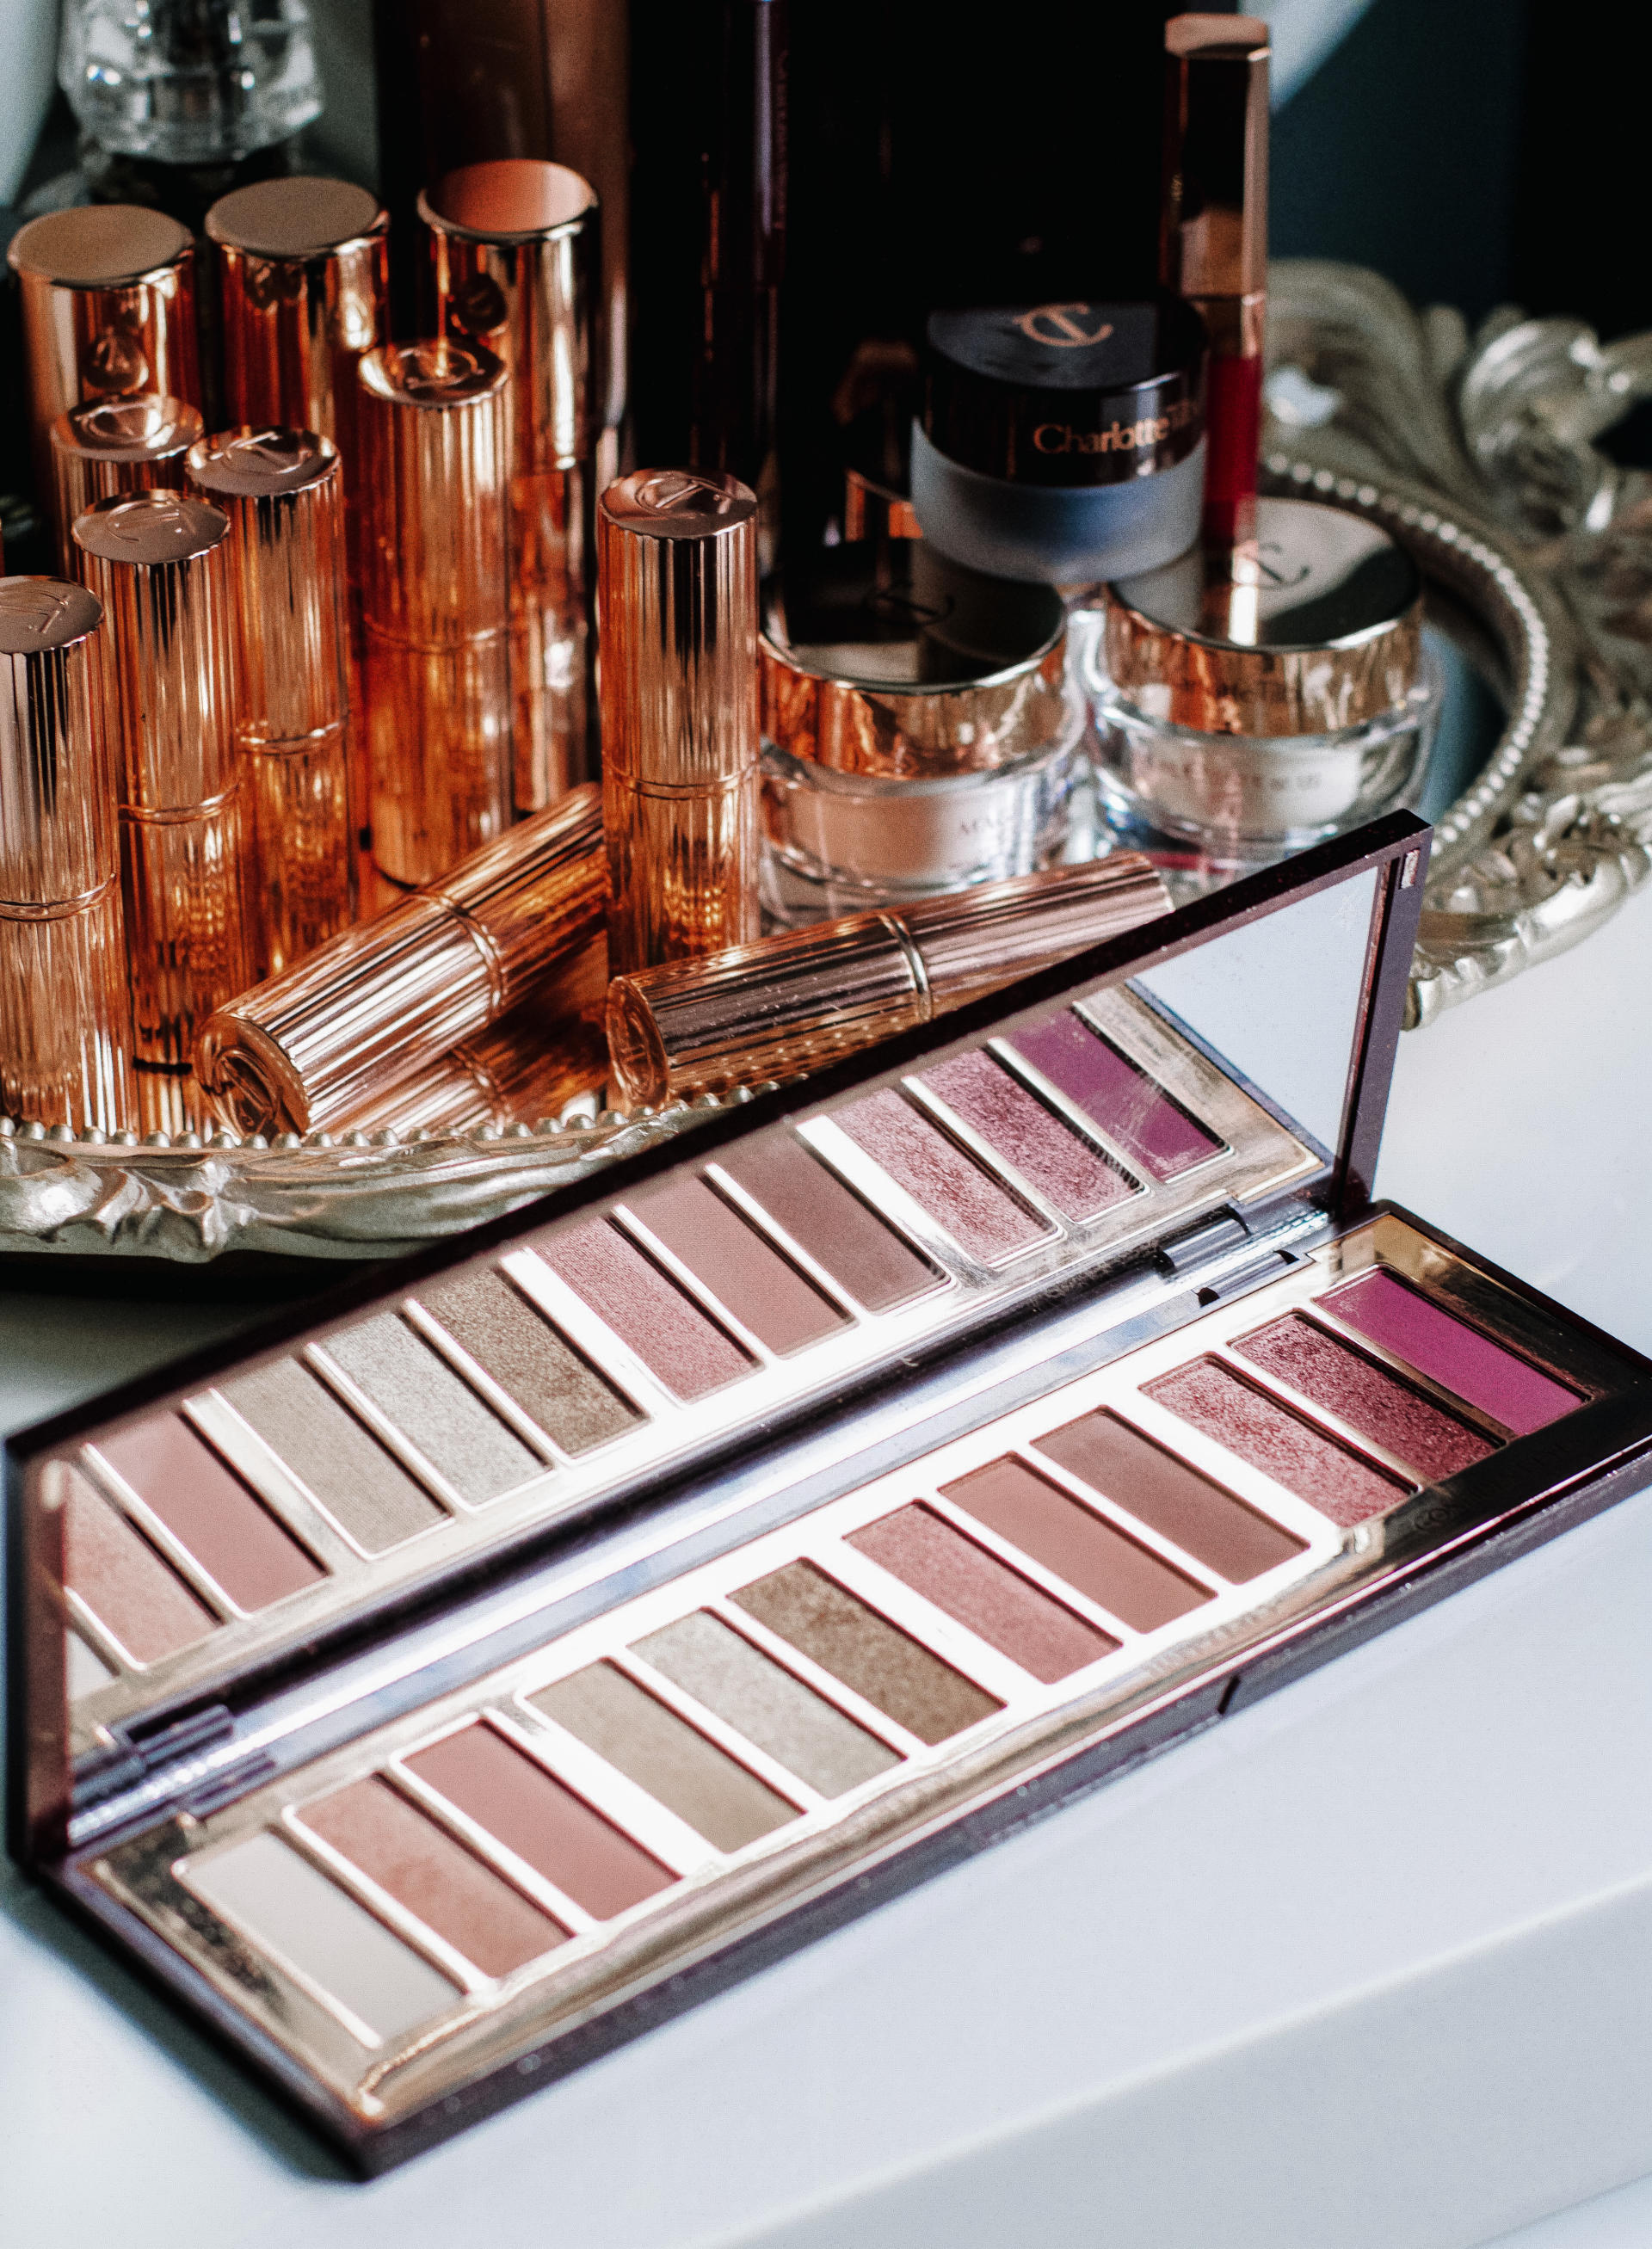 Charlotte Tilbury's Best Black Friday Beauty Deals | Style Domination by Dominique Baker